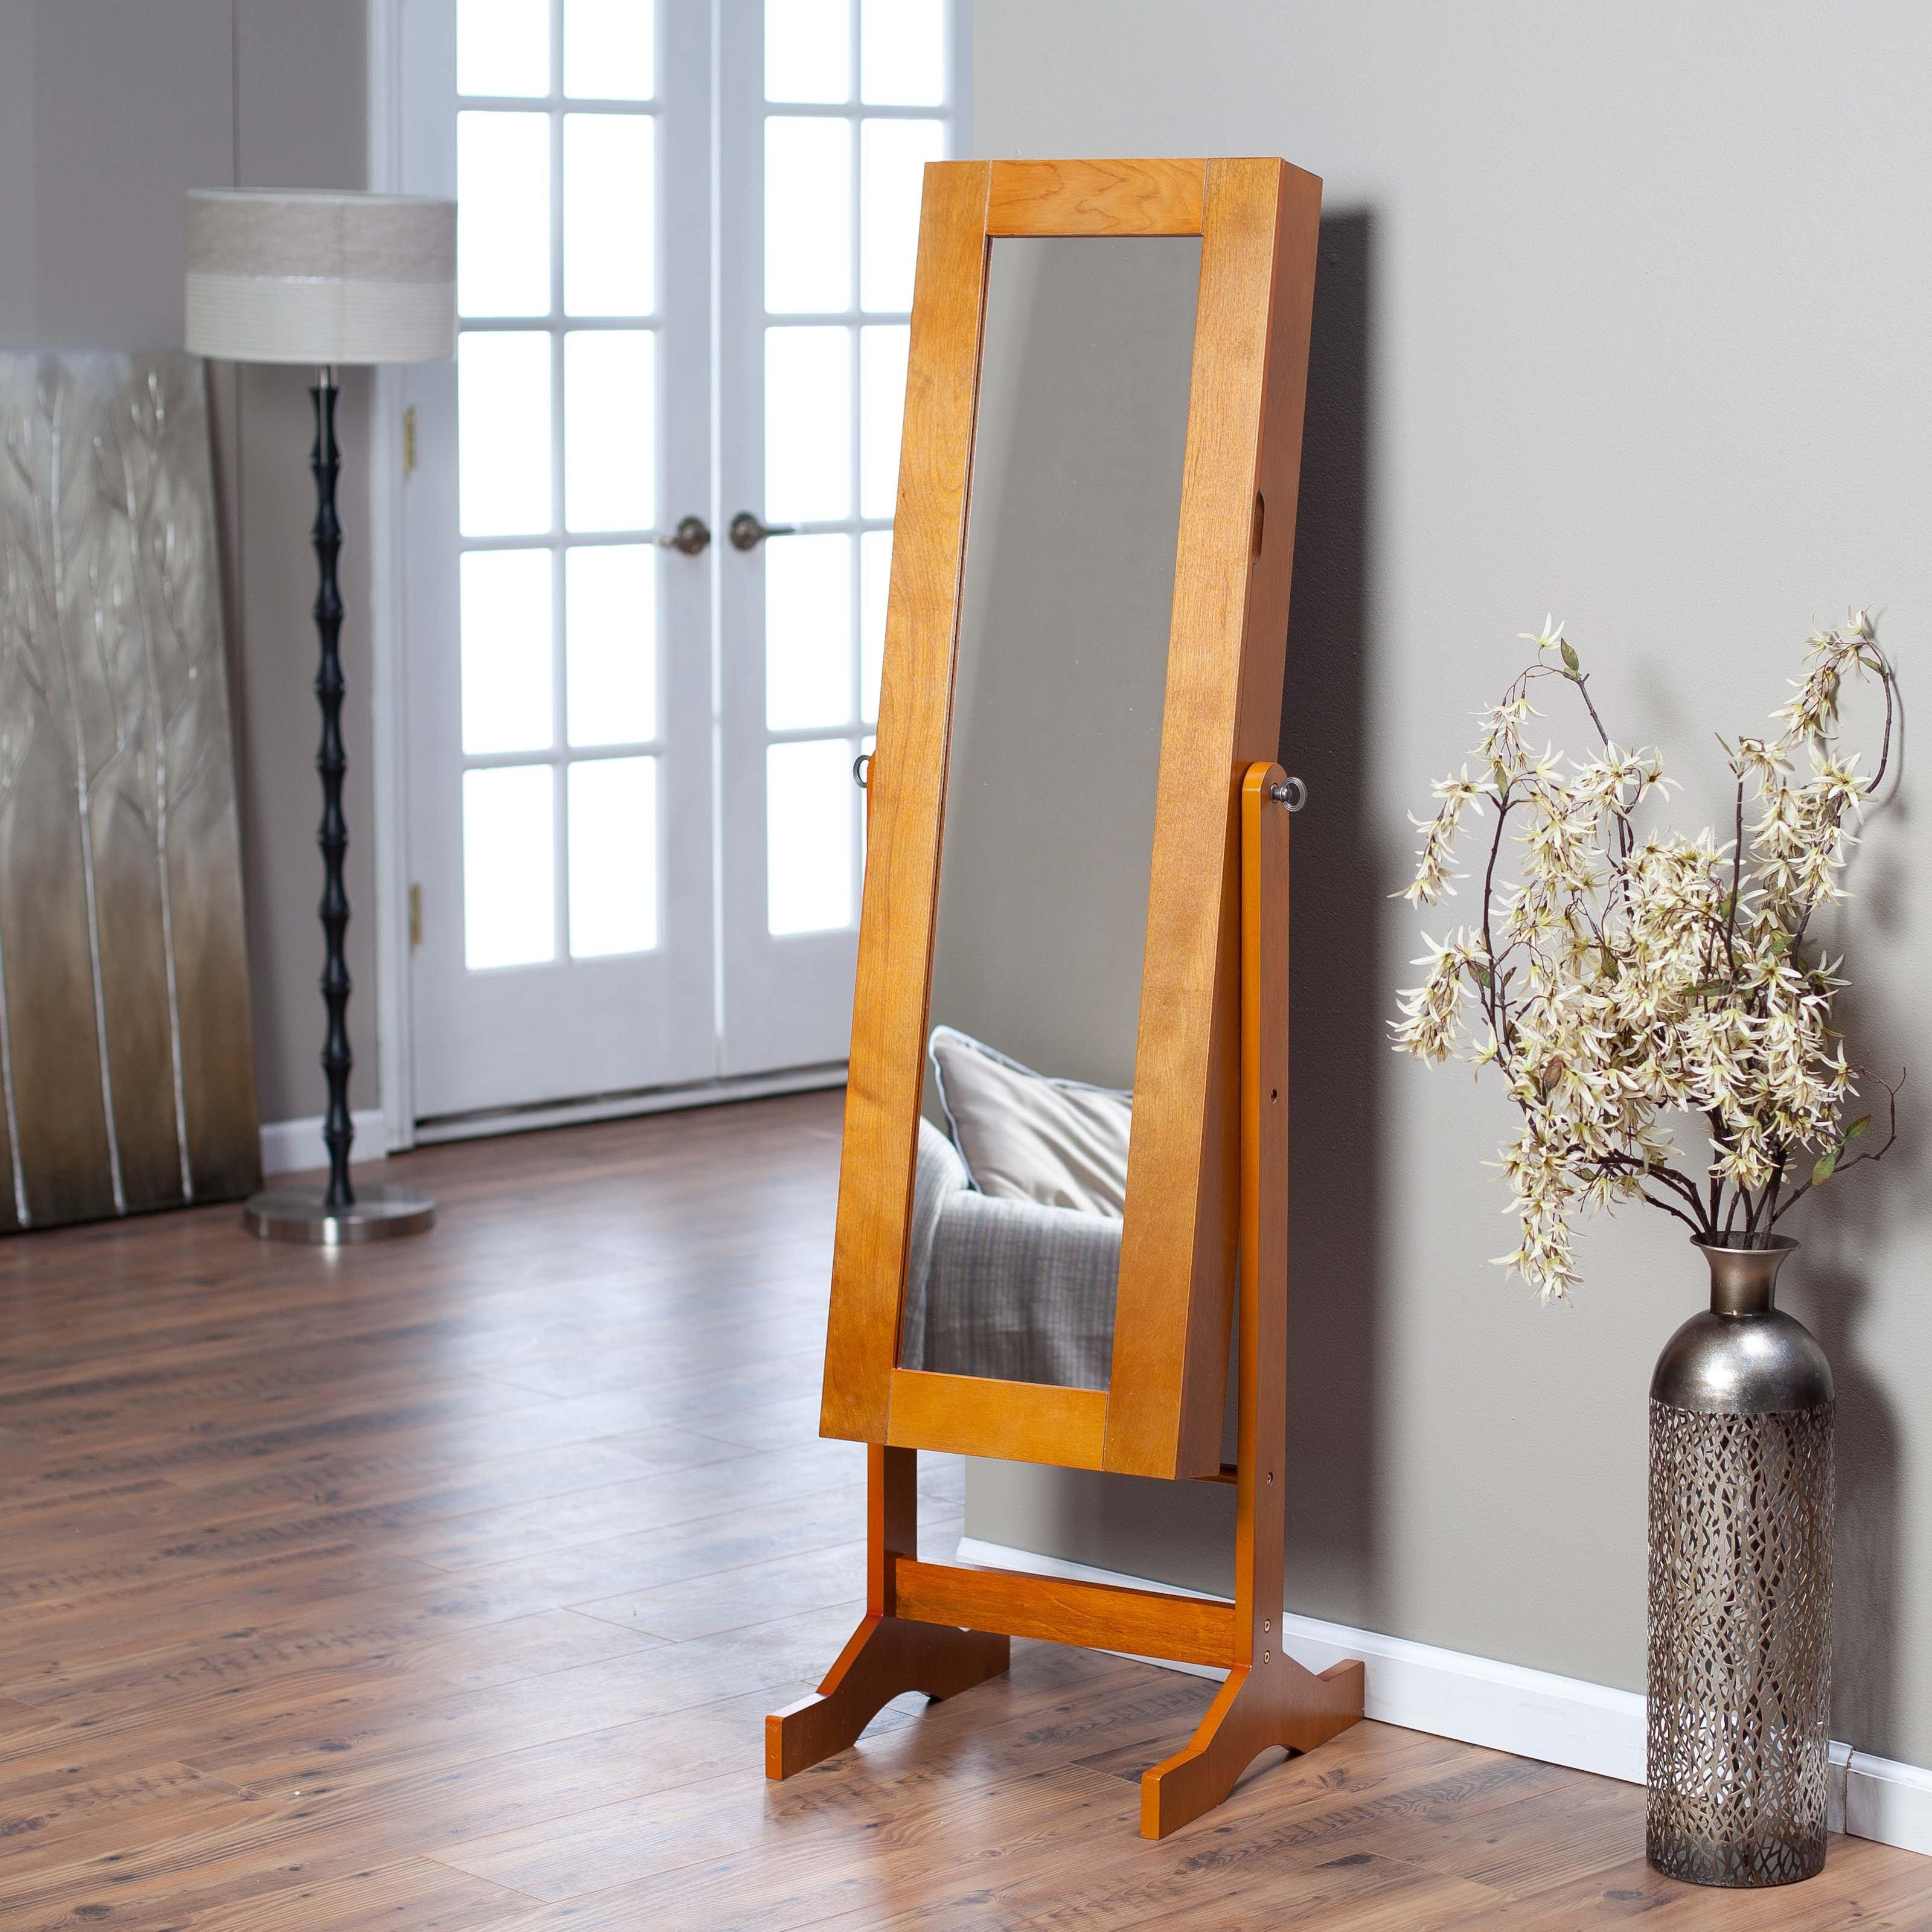 Free Standing Jewellery Cabinet Uk – Monsterlune Inside Free Standing Mirror With Drawer (Image 11 of 20)